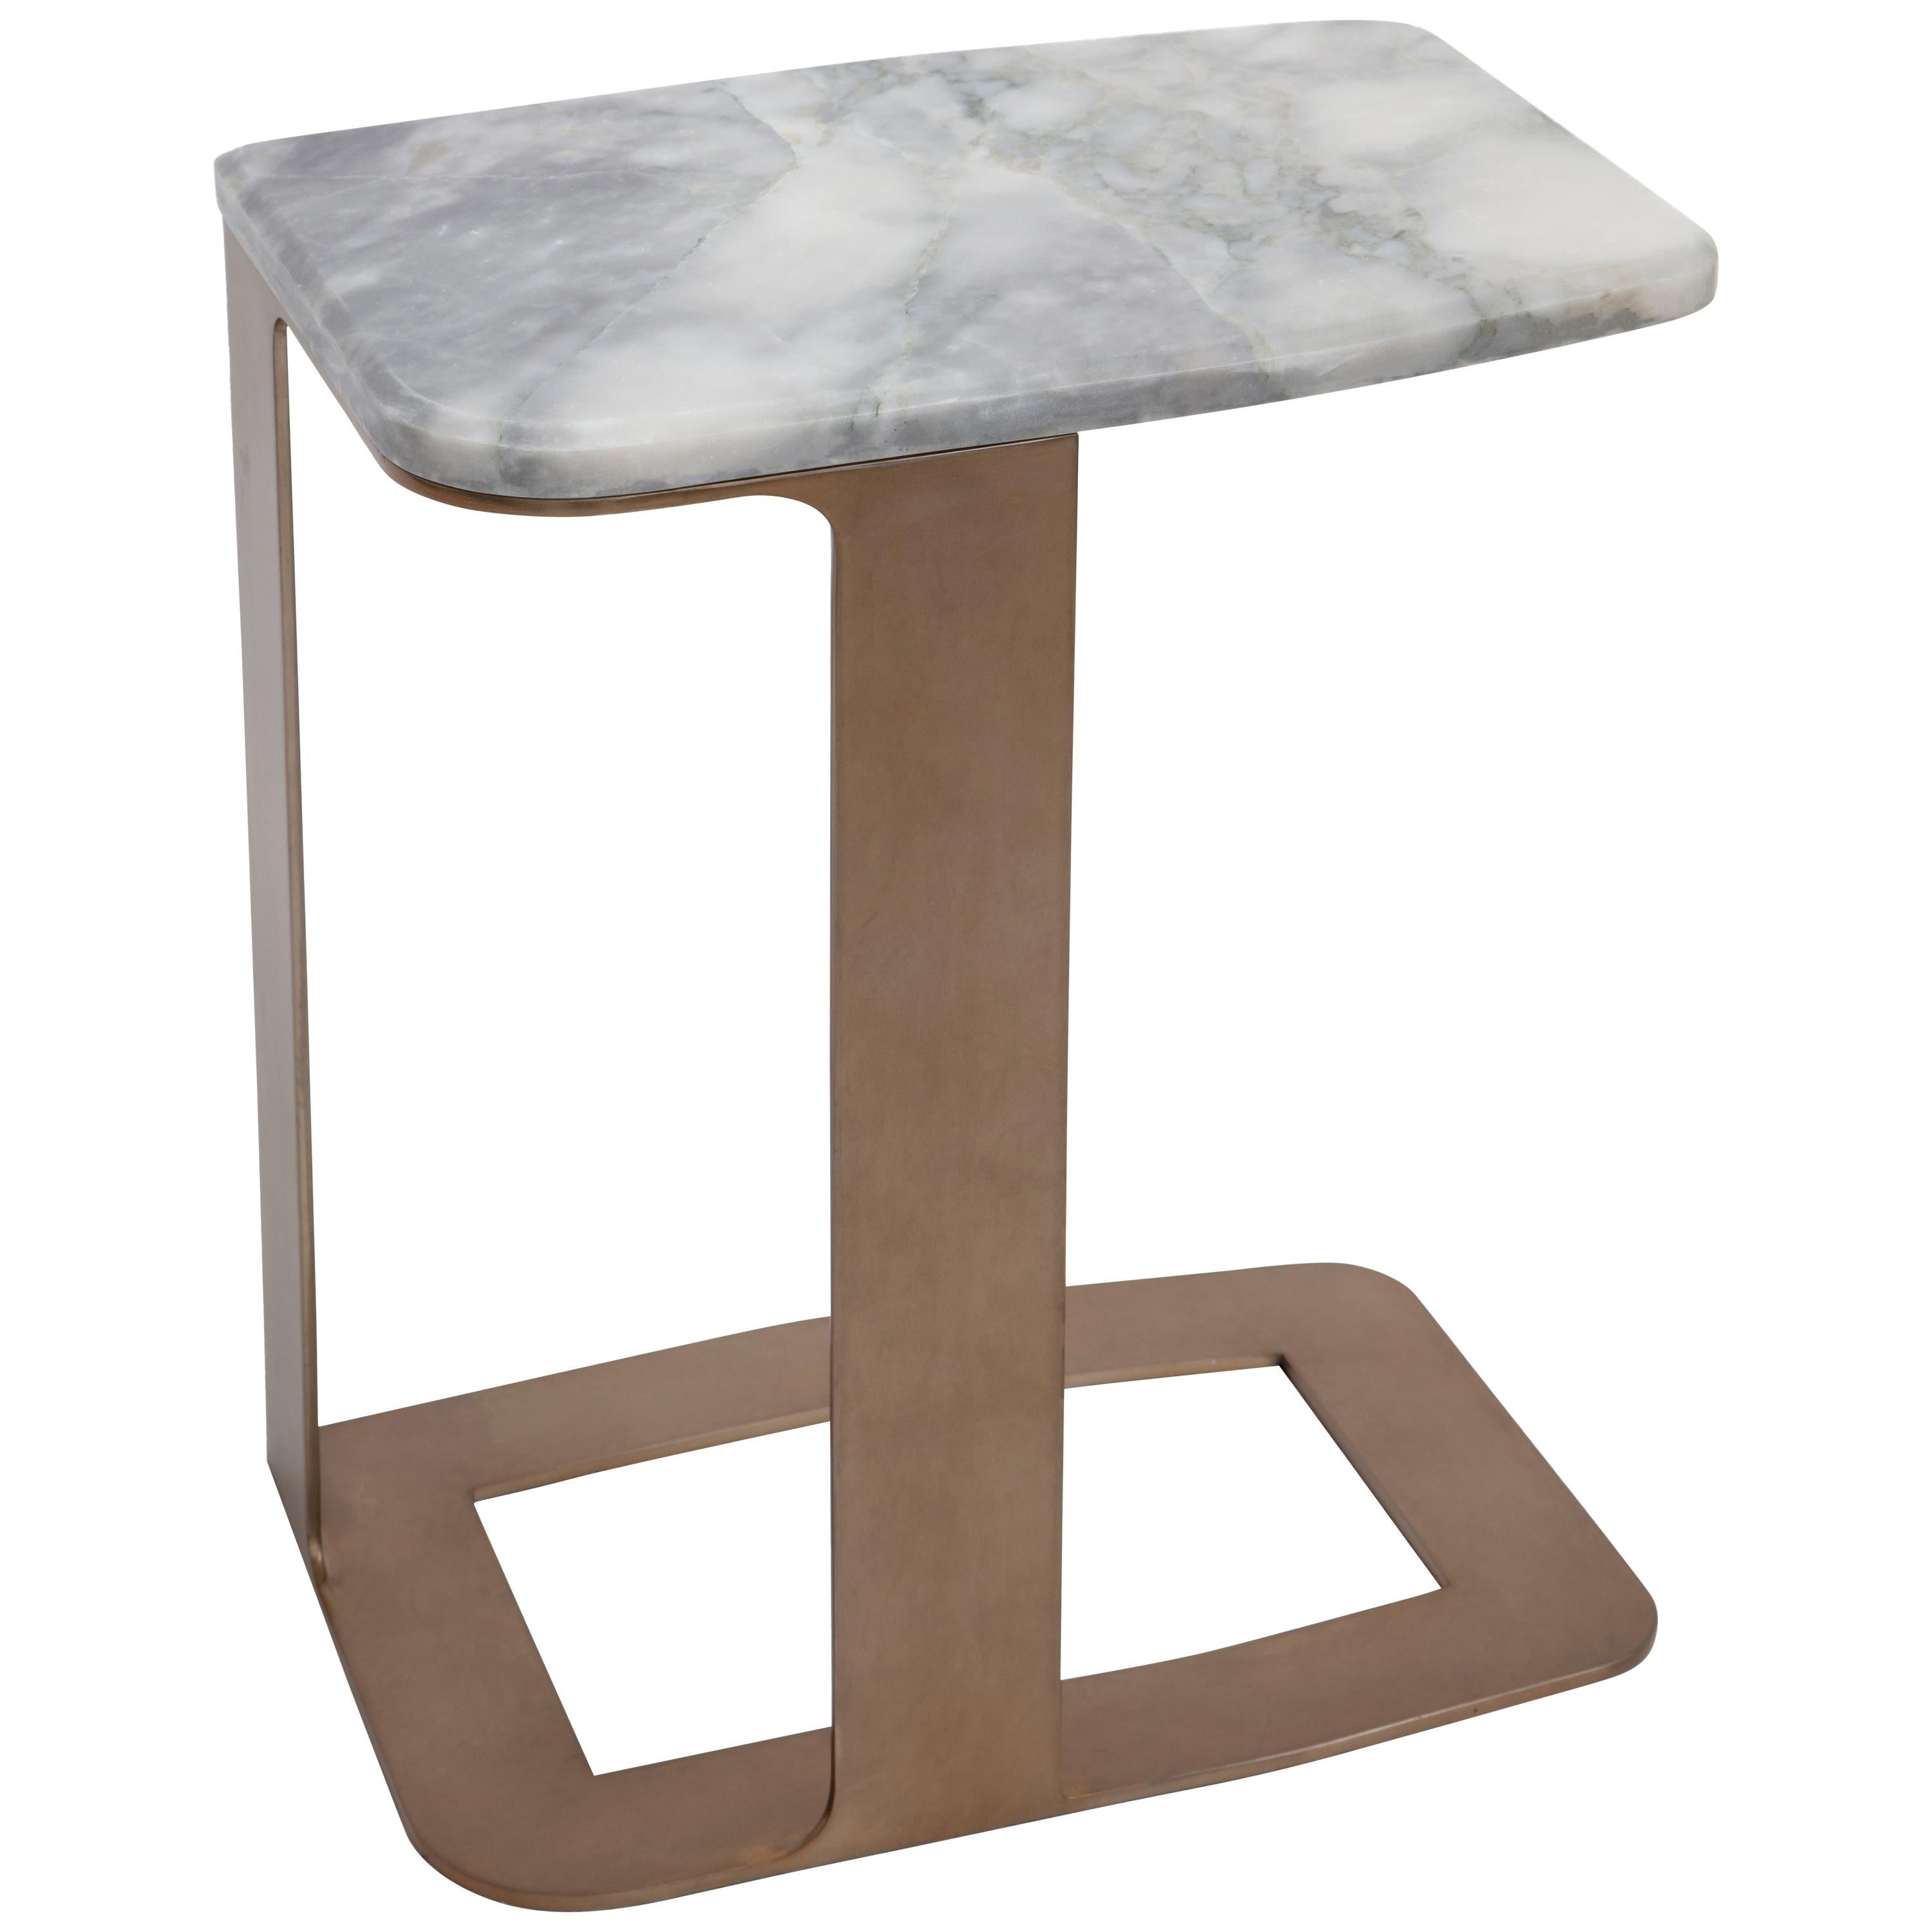 Awesome Tuya Drink Table, Contemporary Side Table In Marble And Bronze Patina Finish